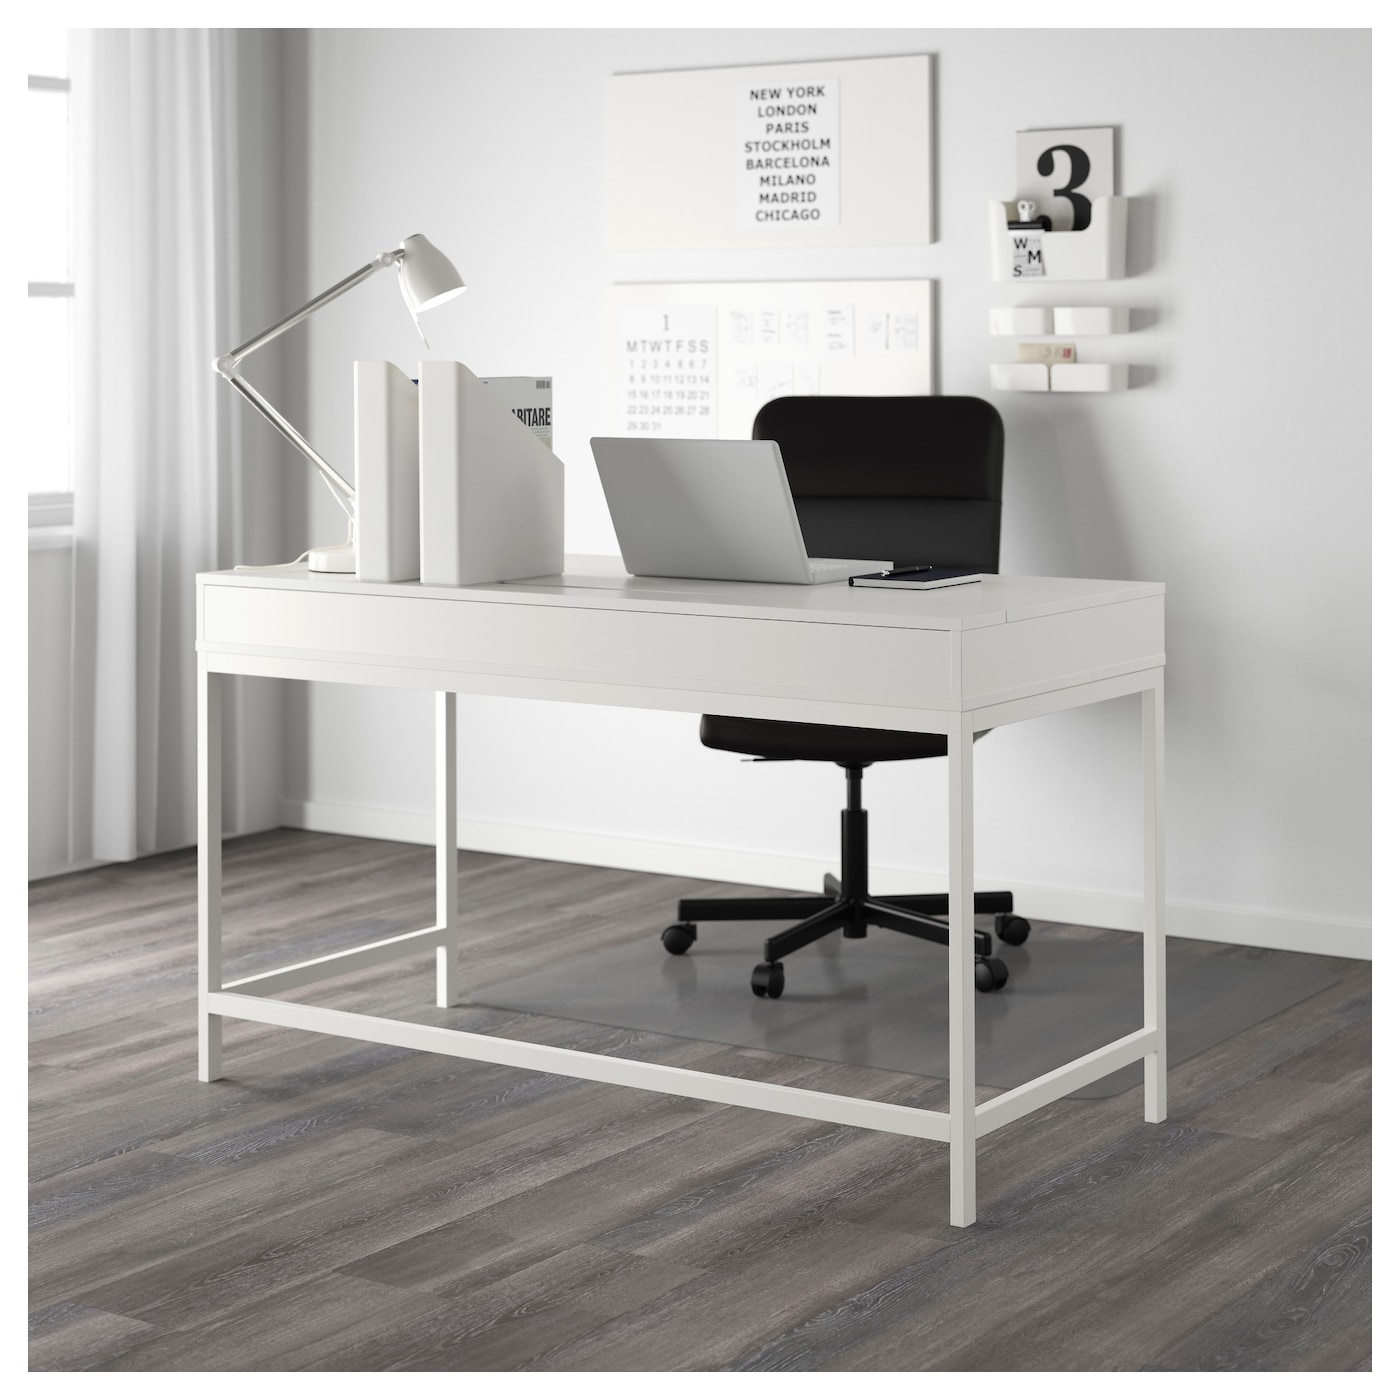 alex desk white 131x60 cm ikea. Black Bedroom Furniture Sets. Home Design Ideas